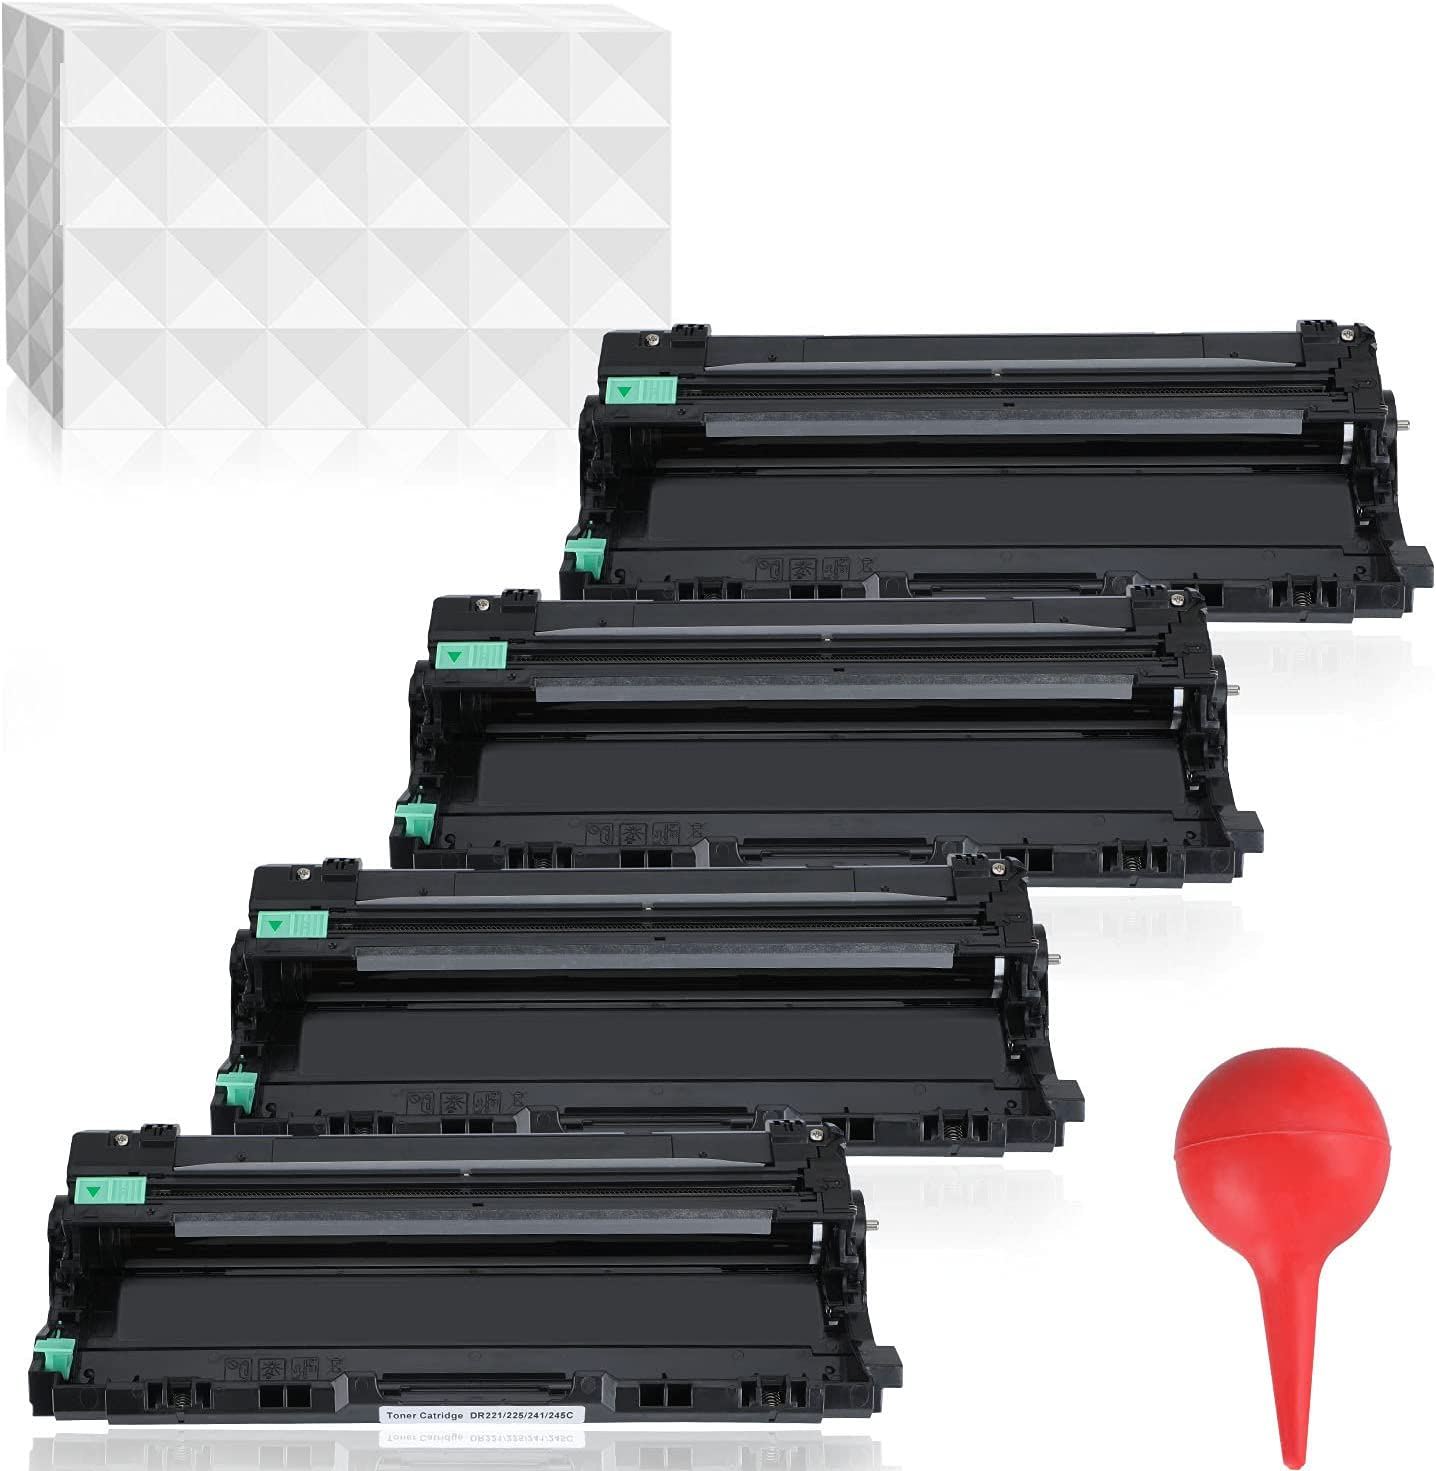 YOUTOP DR223CL DR223 Remanufactured Drum Unit DR-223 Replacement for Brother MFC-L3770CDW MFC-L3750CDW HL-L3230CDW HL-L3290CDW HL-L3210CW MFC-L3710CW Printer, 4 Pack (Black, Cyan, Magenta, Yellow)